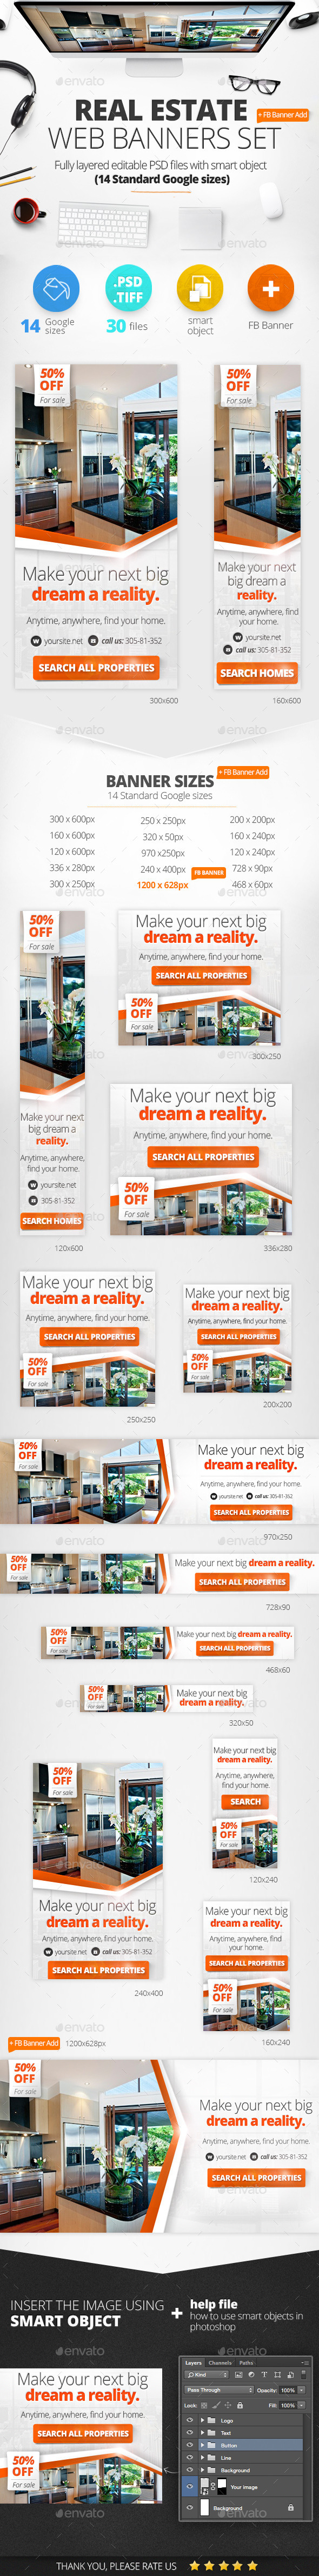 Real Estate Web Baners & Facebook Banner - Banners & Ads Web Elements